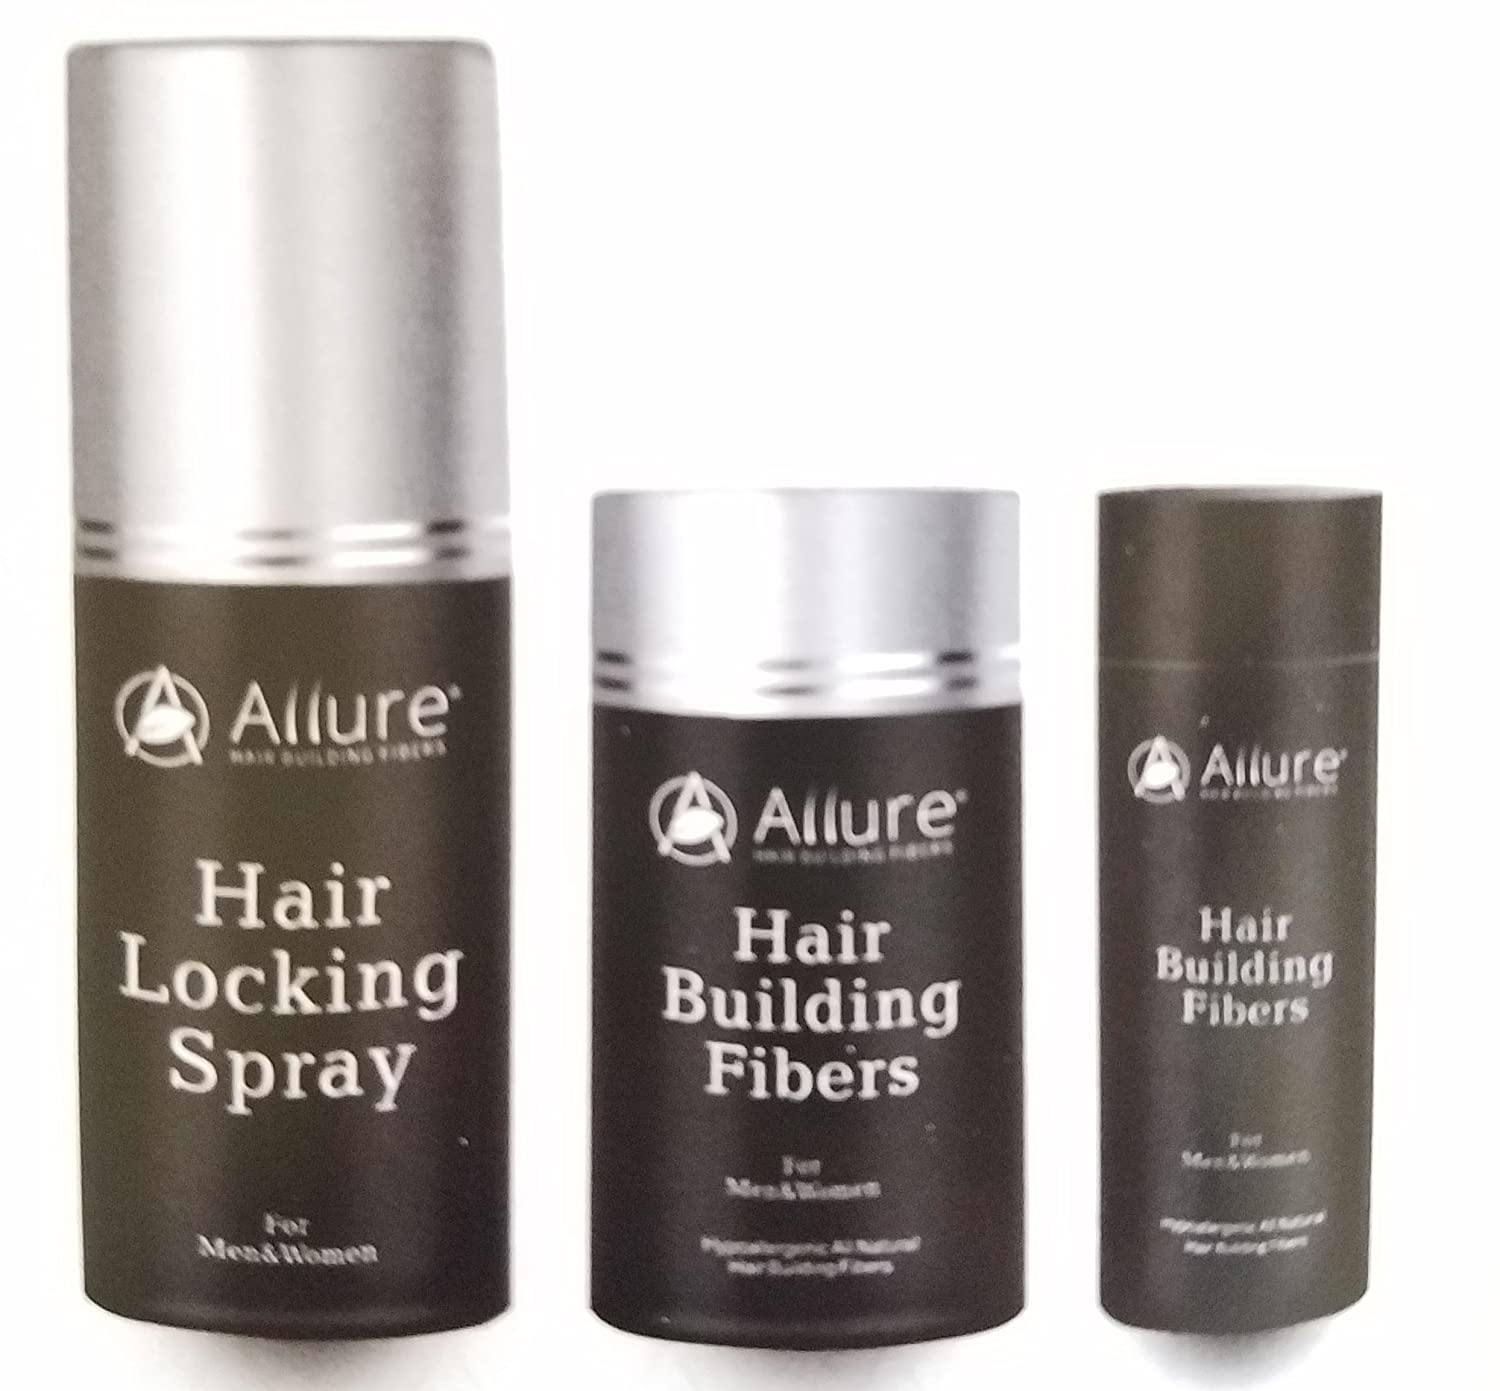 Allure Hair Building Fibers (HBF) (22g) + Allure HBF Spray (100 ml) (Medium Brown)